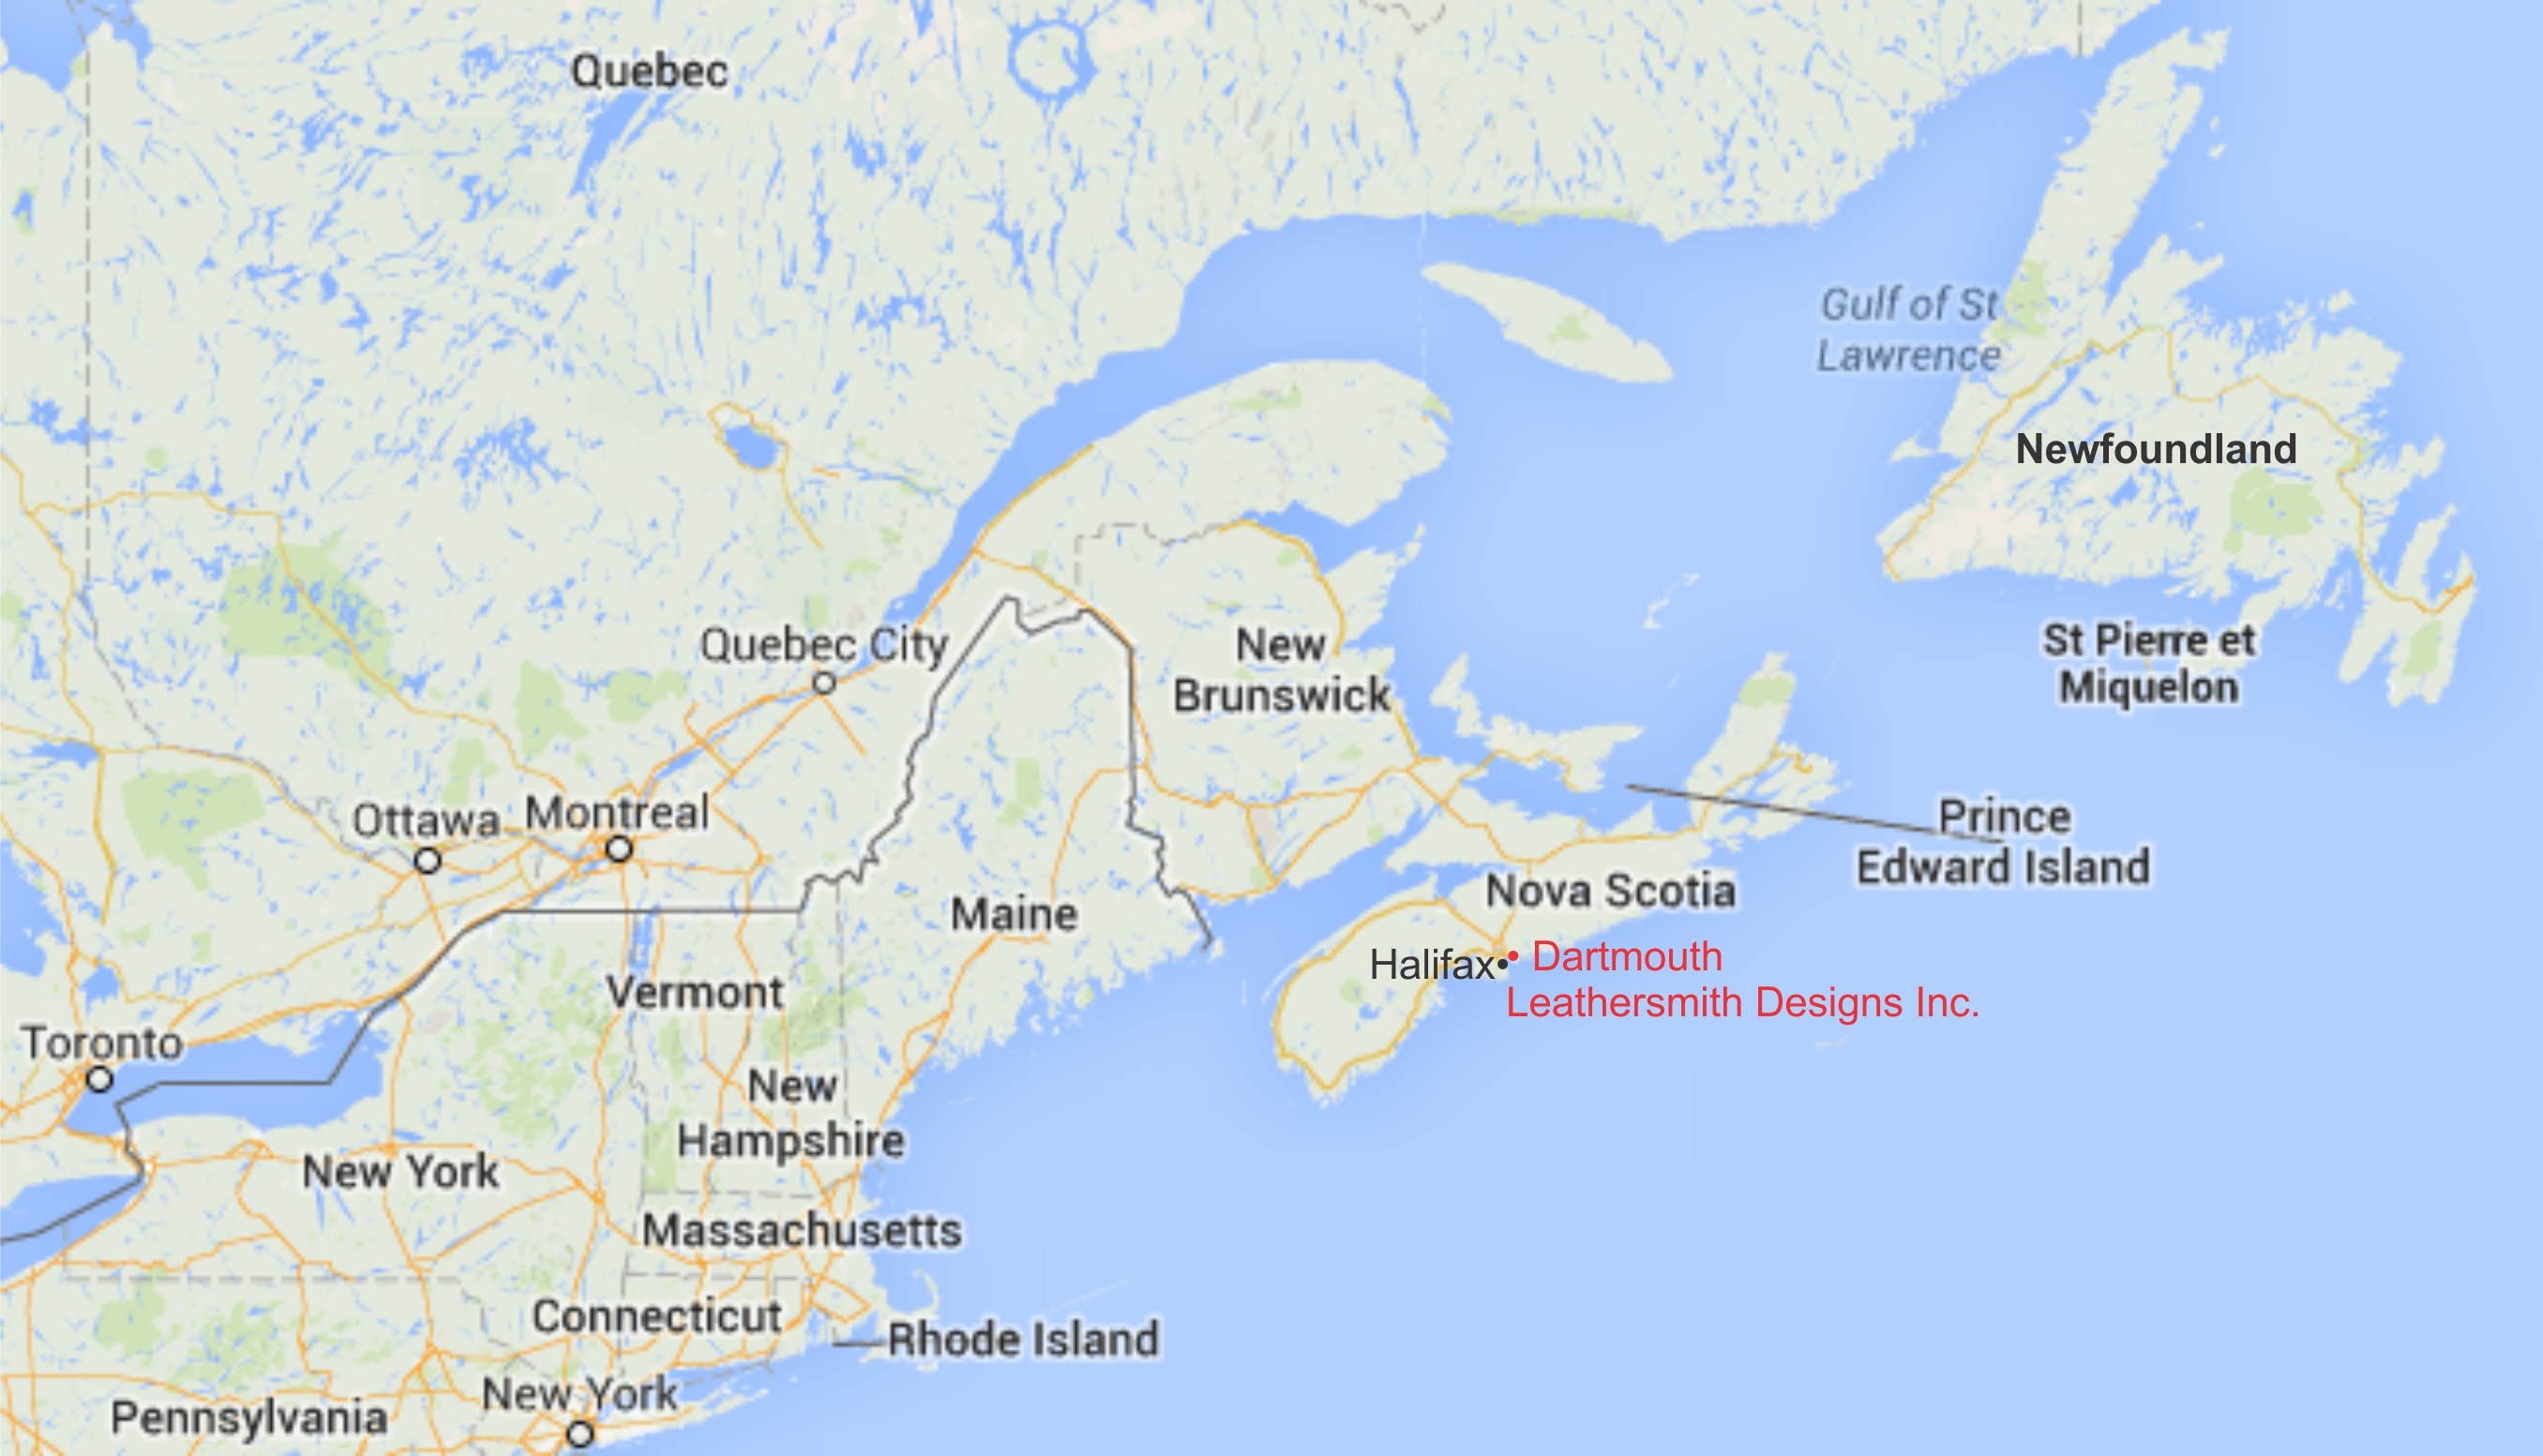 map-nova-scotia-canada-maine-united-states.jpg